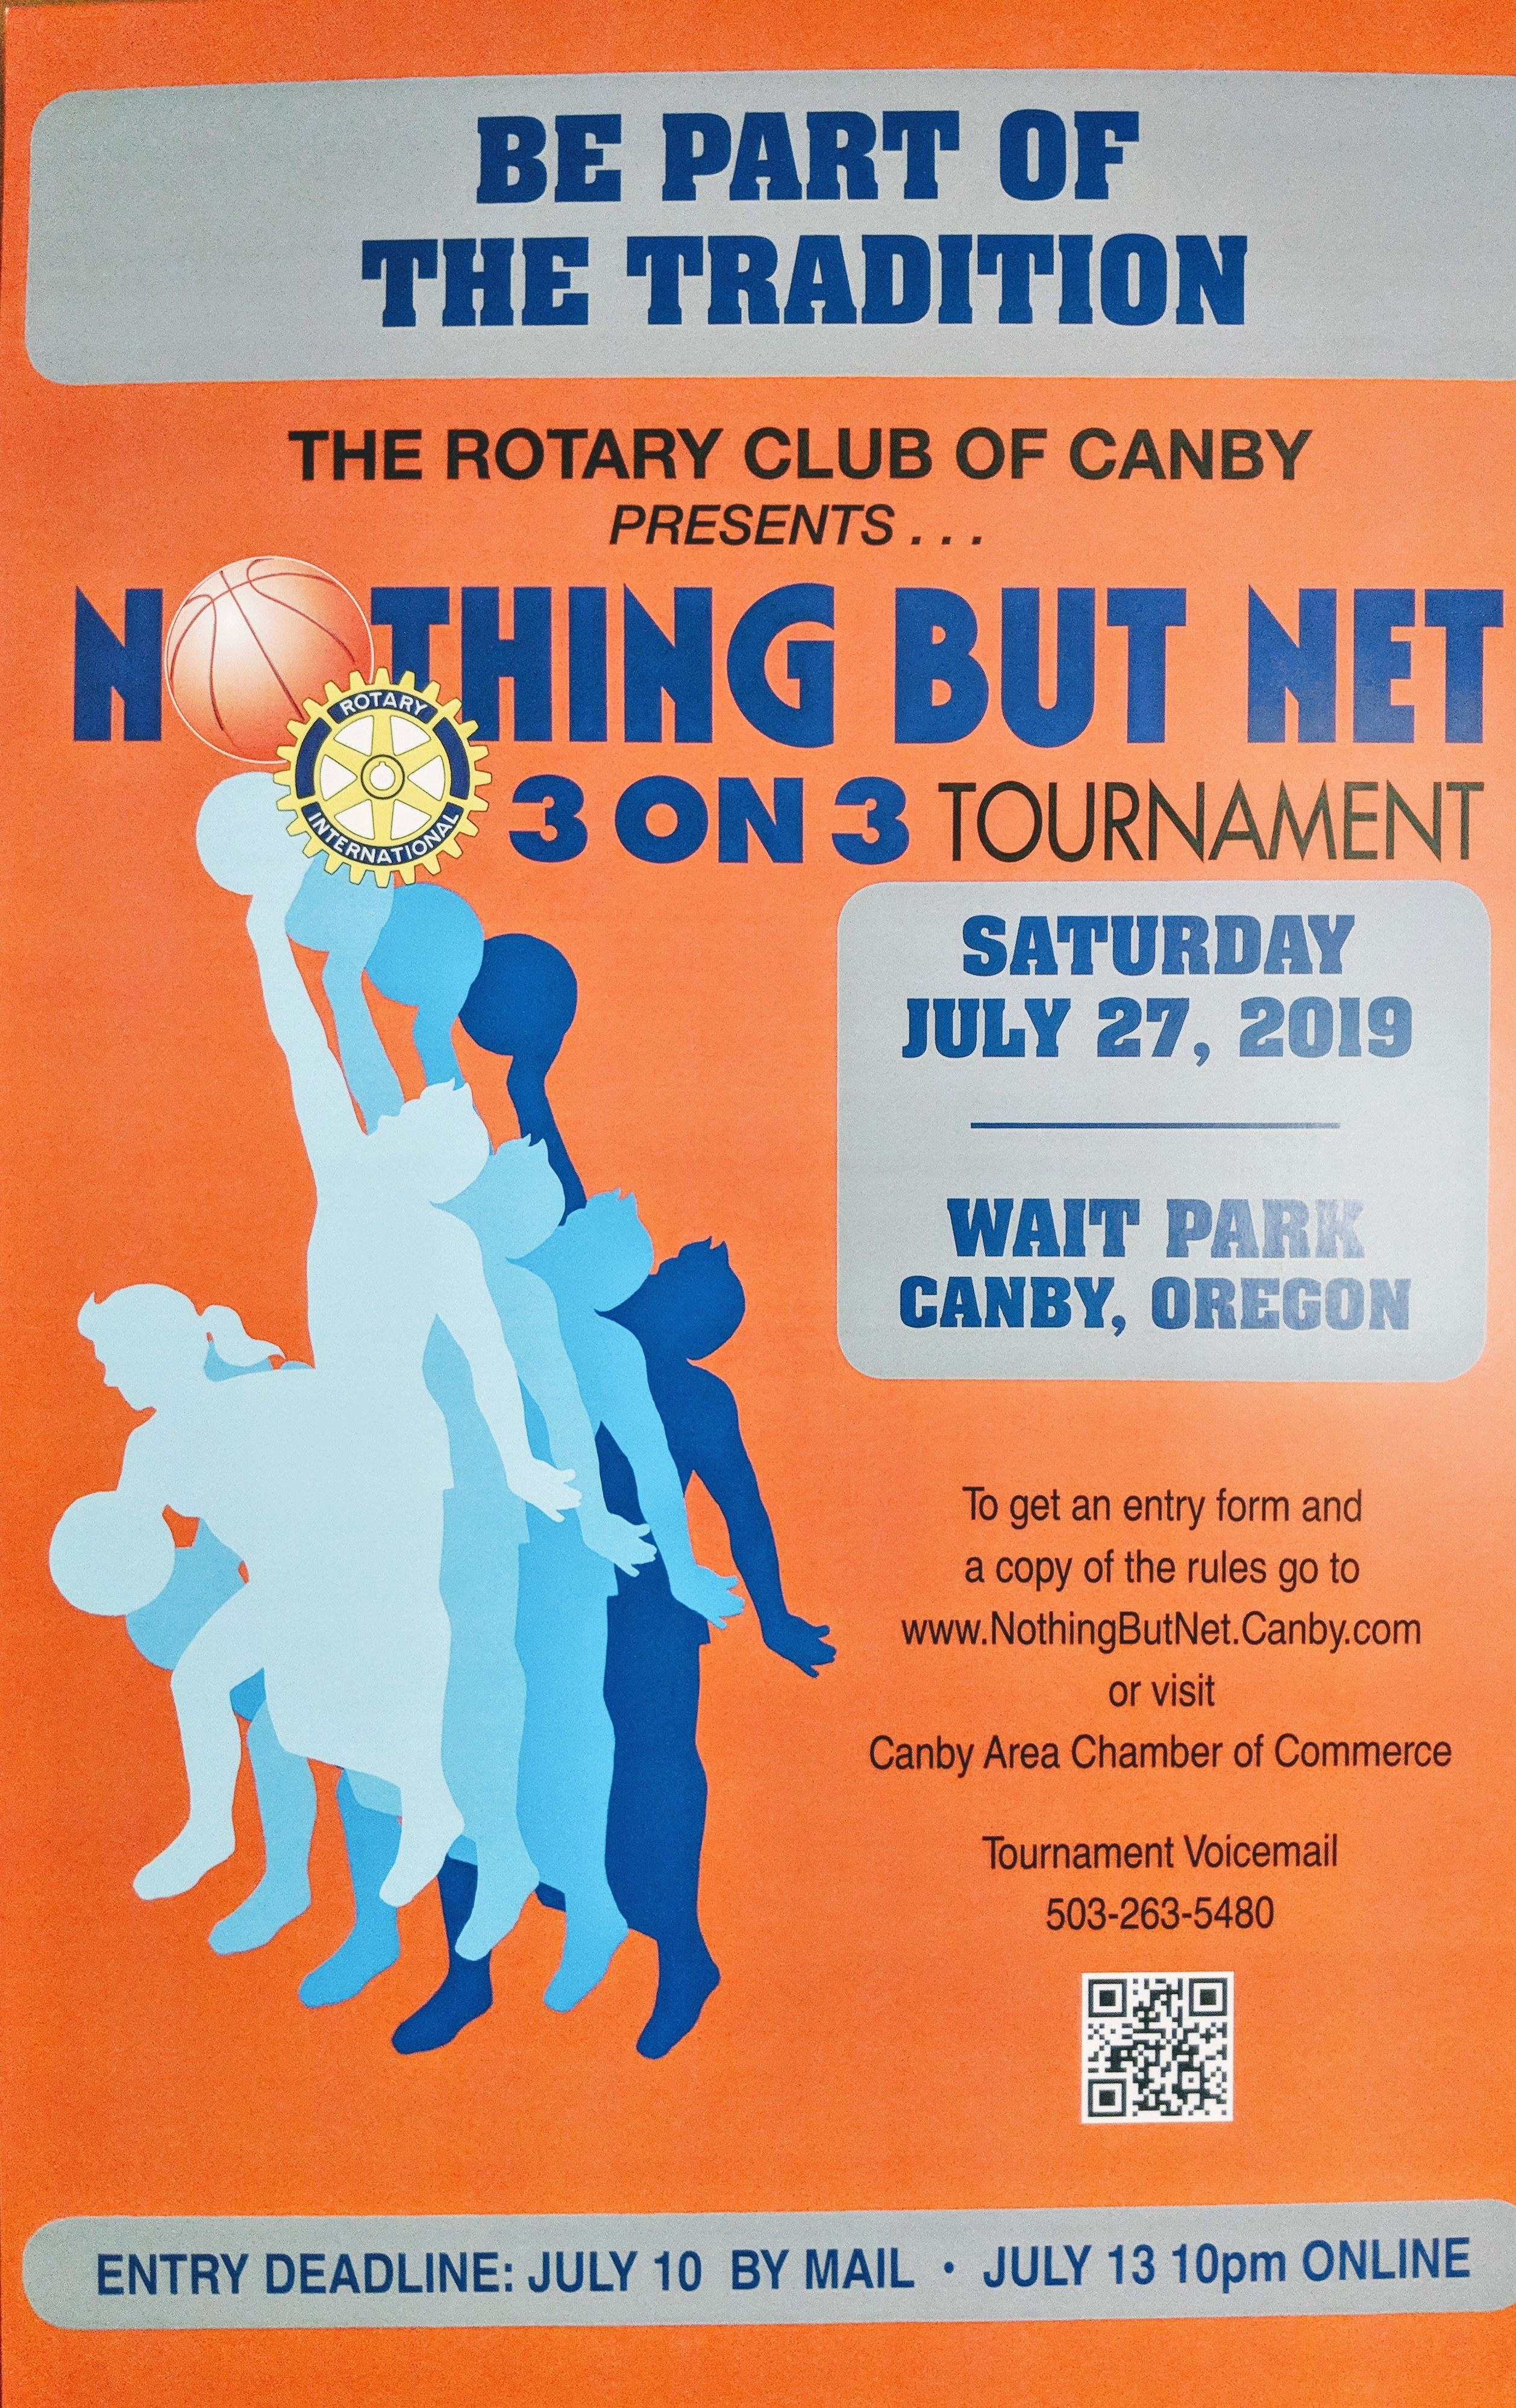 Canby Rotary 3-on-3 Basketball Tournament